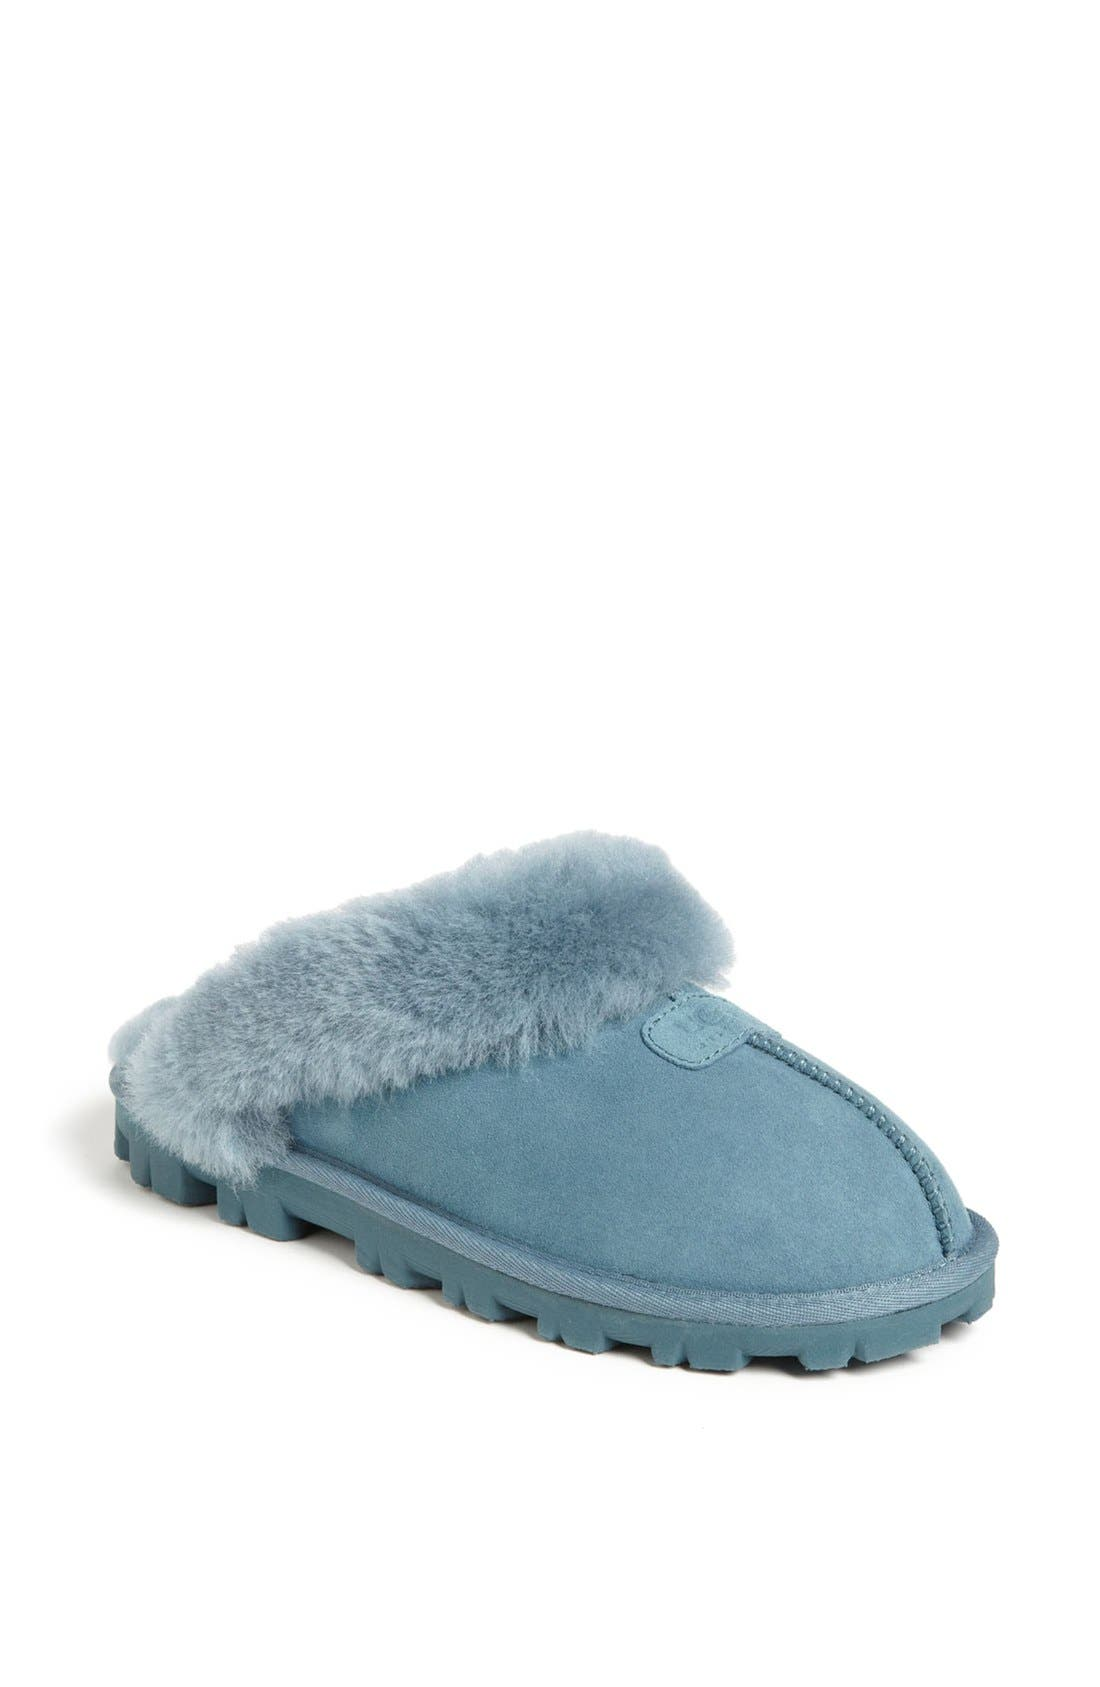 Alternate Image 1 Selected - UGG® Australia Slipper (Women) (Exclusive Color)